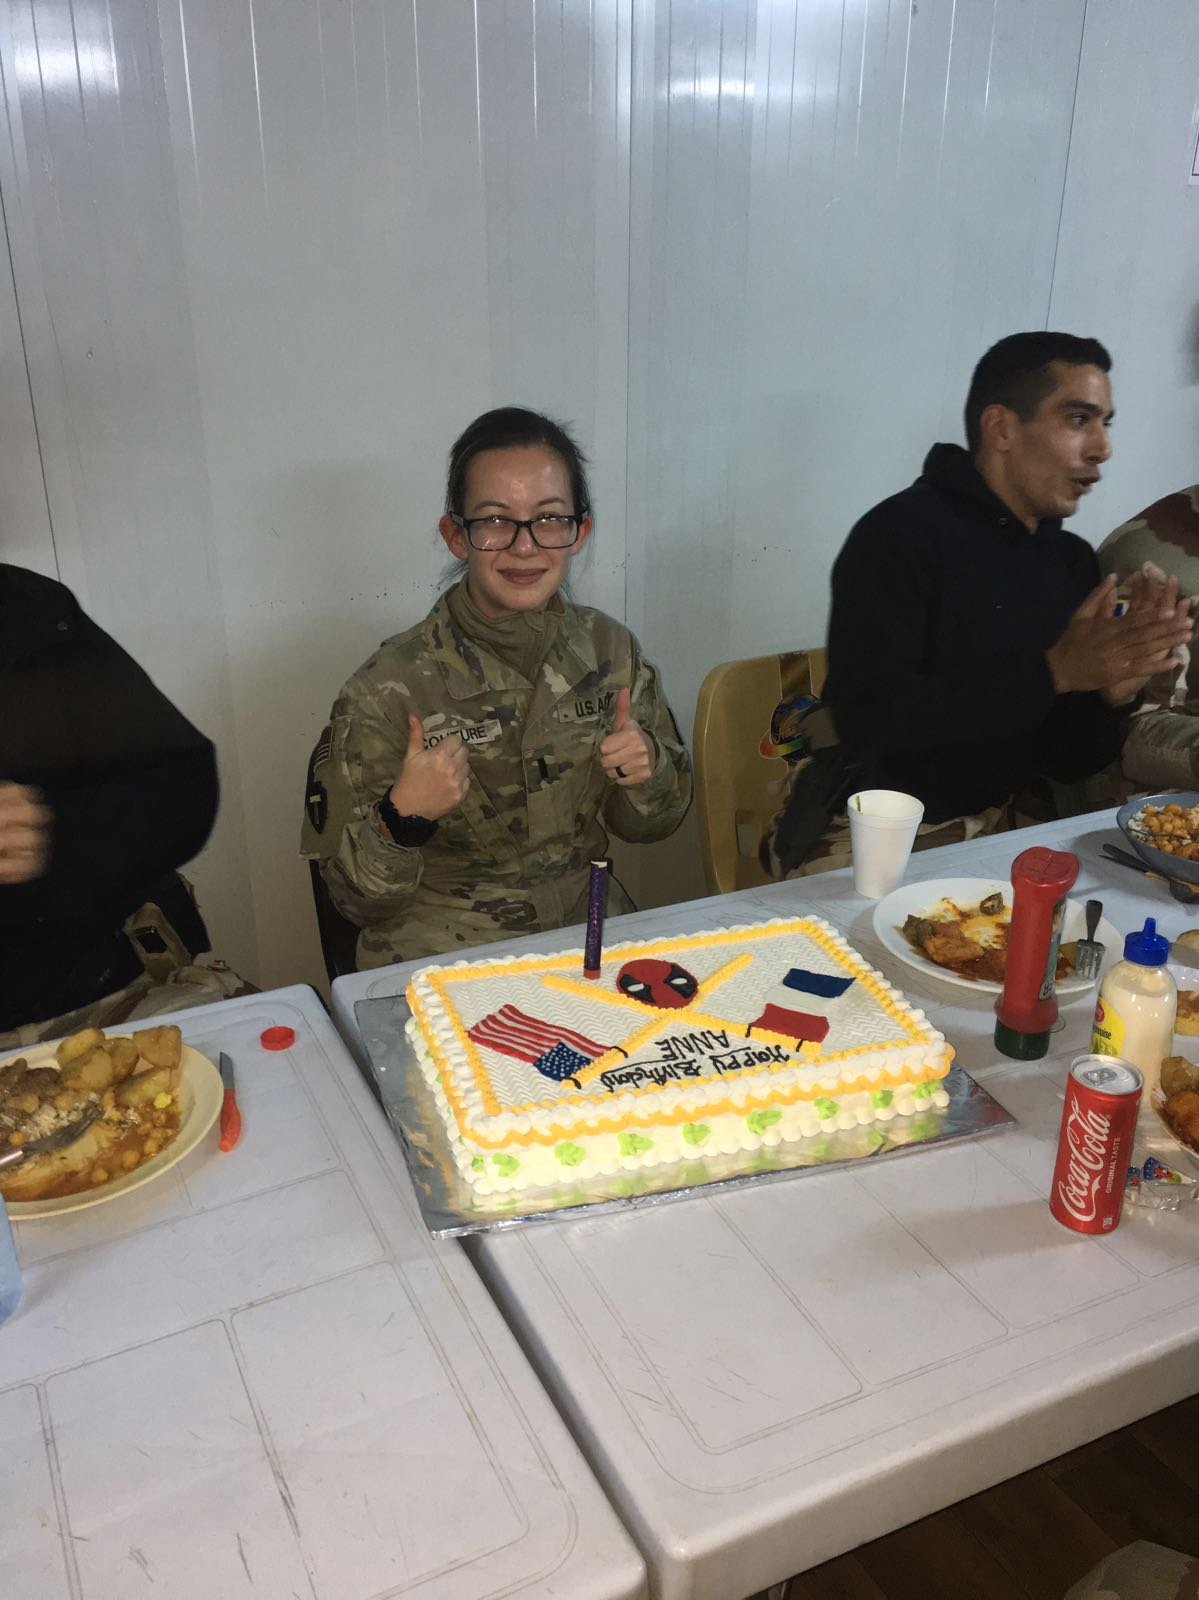 Celebrating my birthday in Iraq